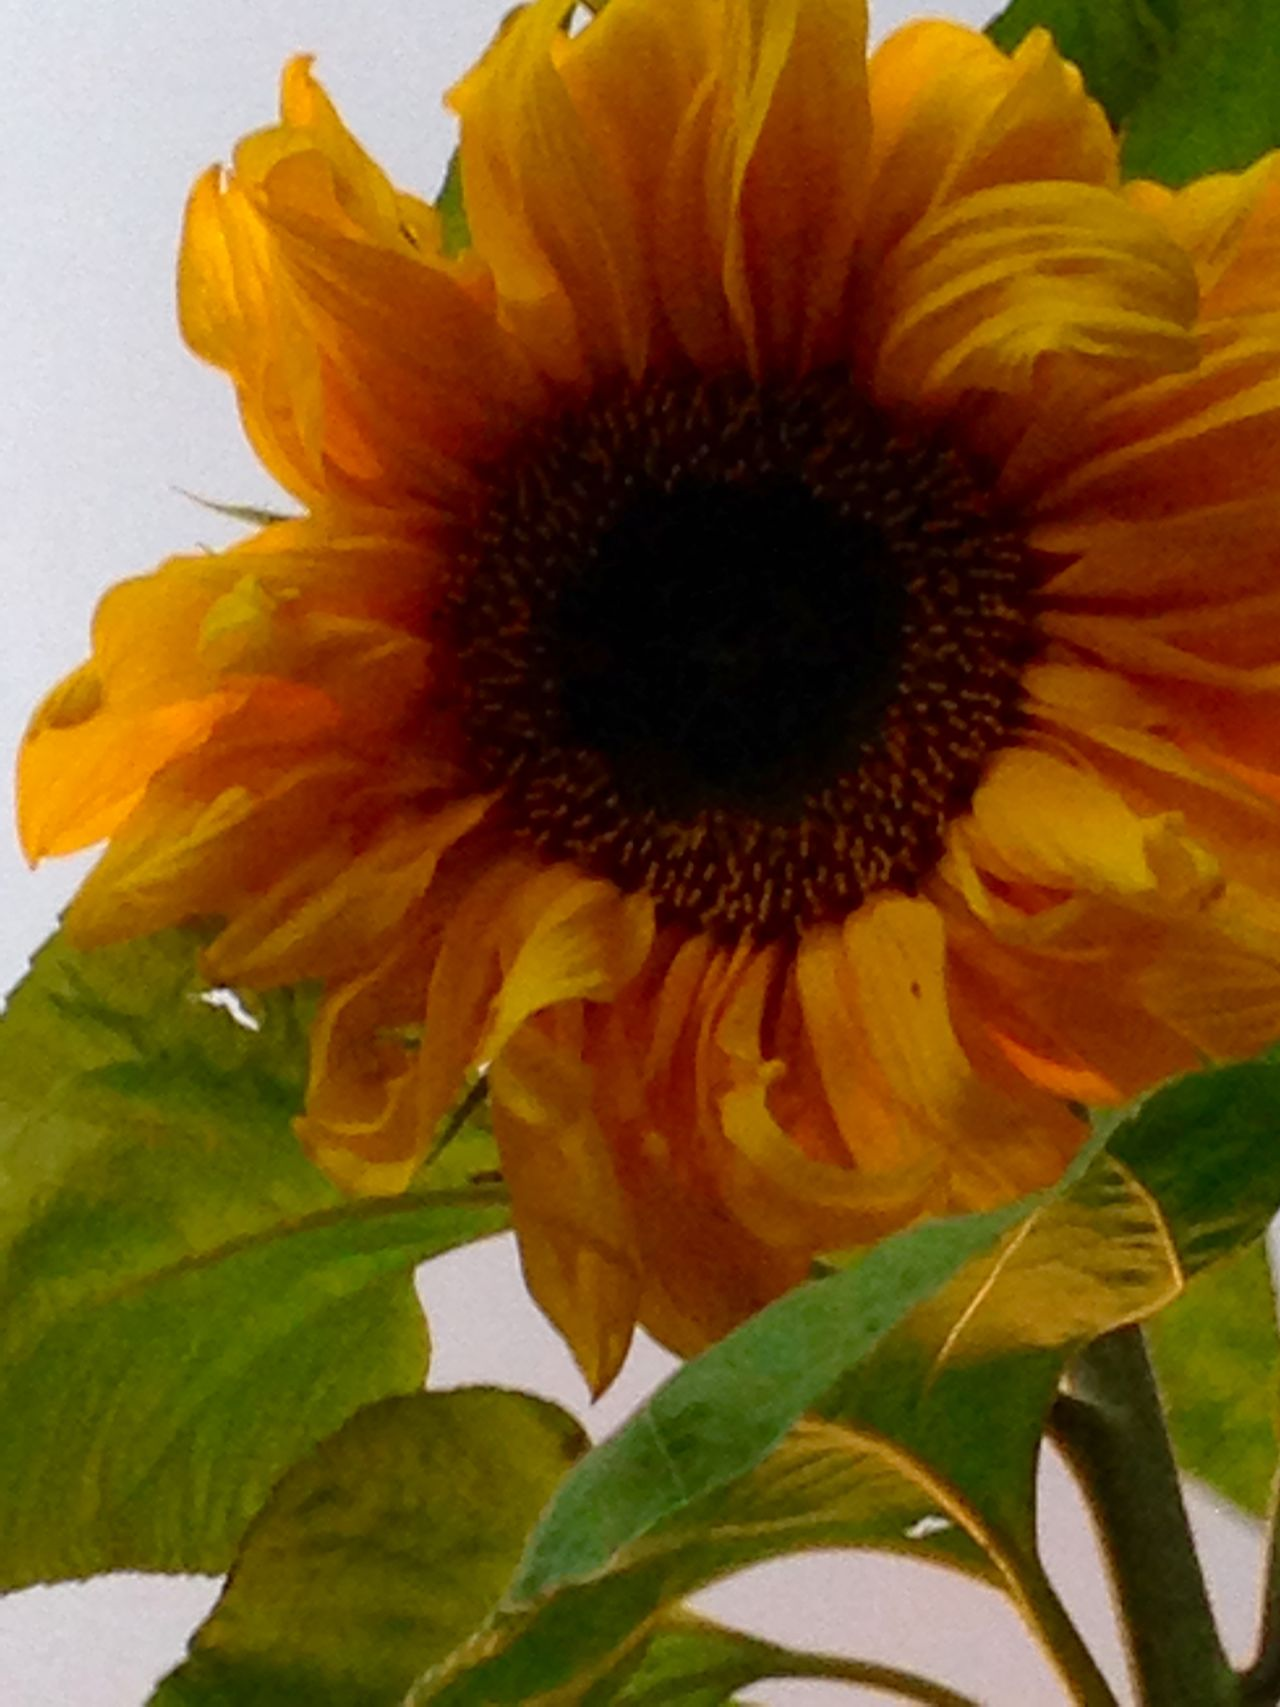 Beauty In Nature Blooming Close-up Day Flower Flower Head Fragility Freshness Growth Nature No People Outdoors Petal Plant Pollen Seeds Flower Springtime Sunflower Yellow Flower